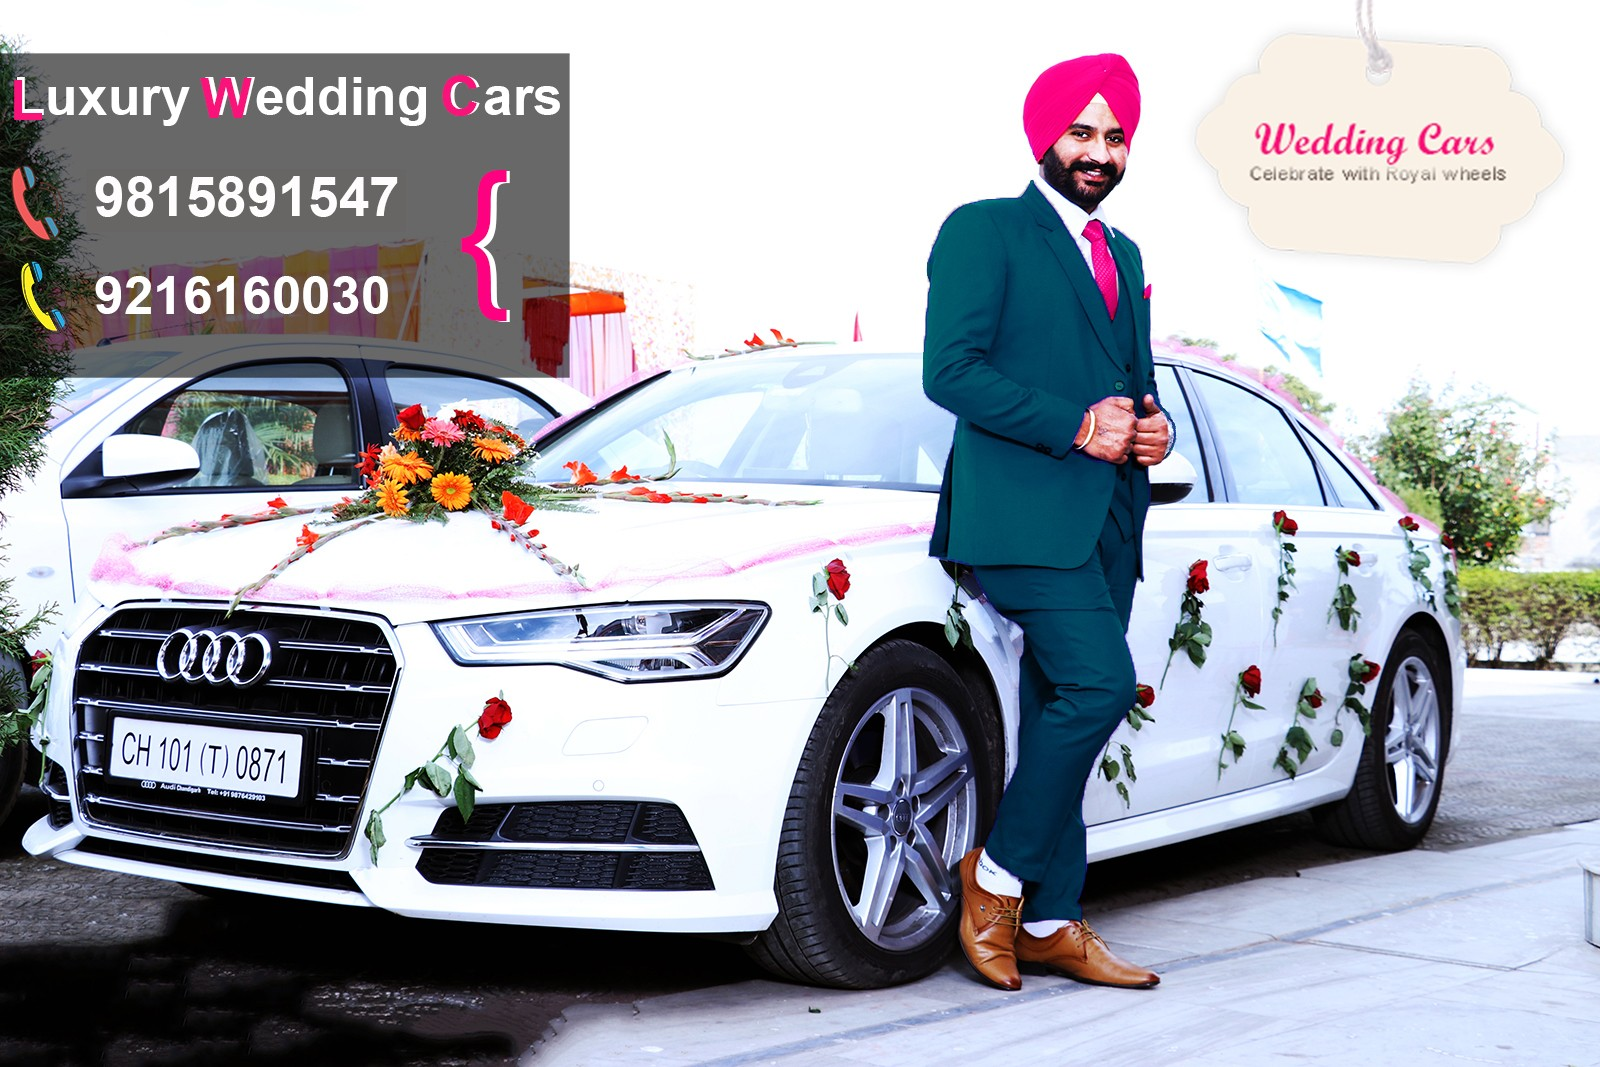 groom wedding cars, groom wedding car in Chandigarh, wedding car for groom